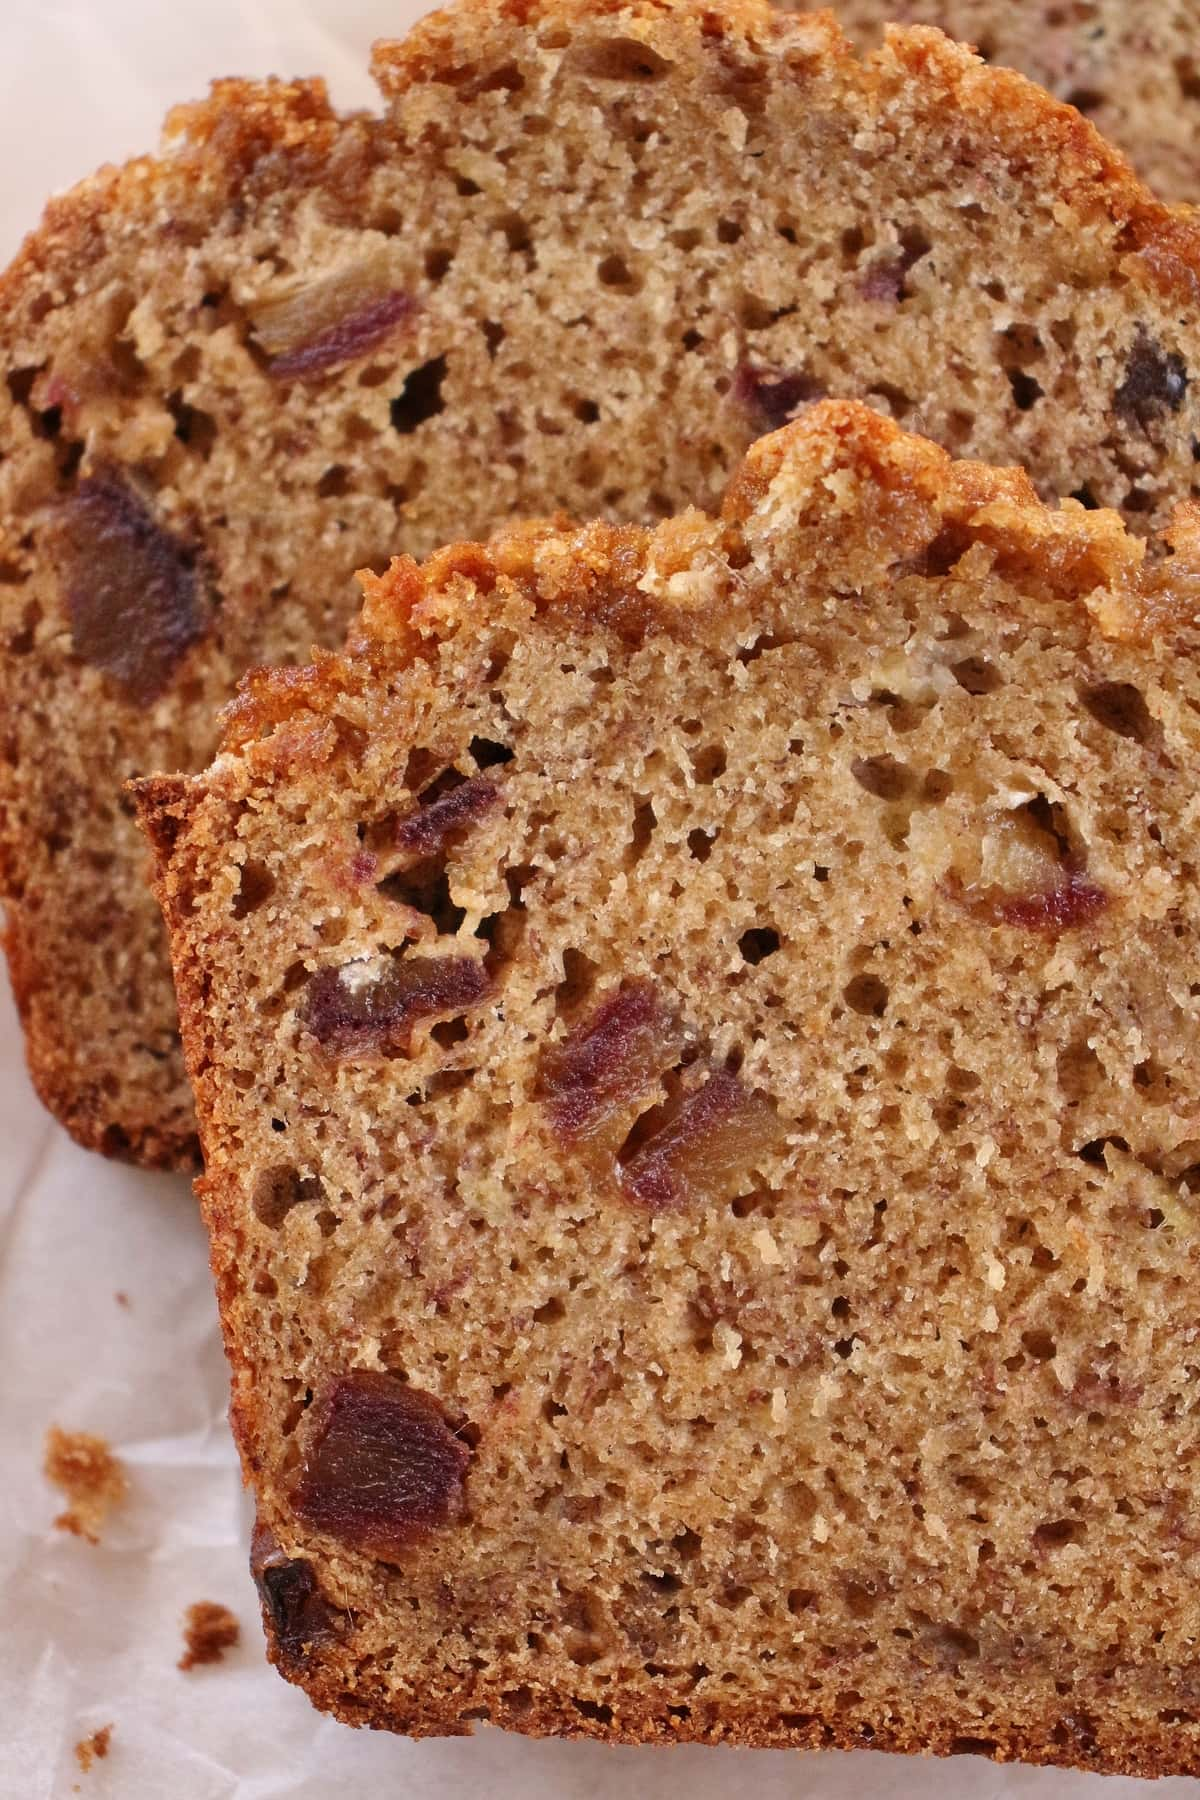 Closeup of slices of banana bread with chopped dates inside.